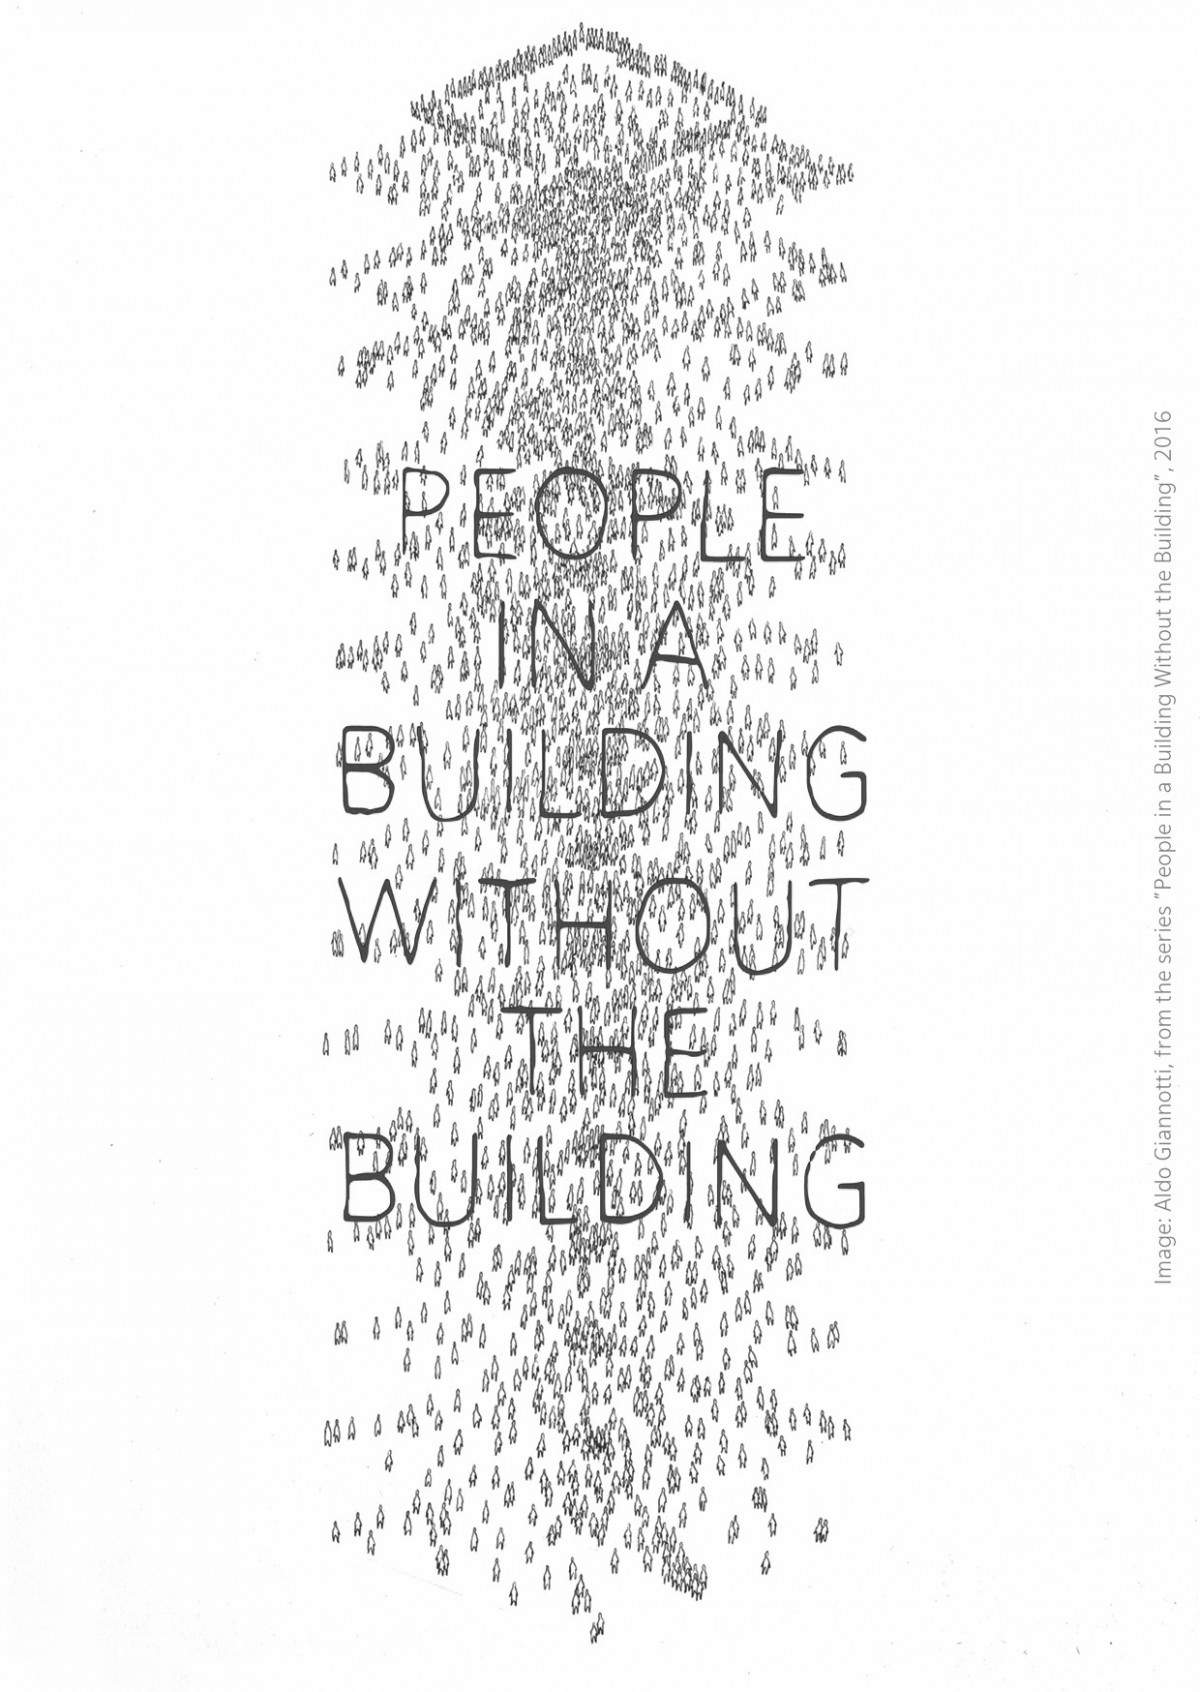 People in a Building Without the Building